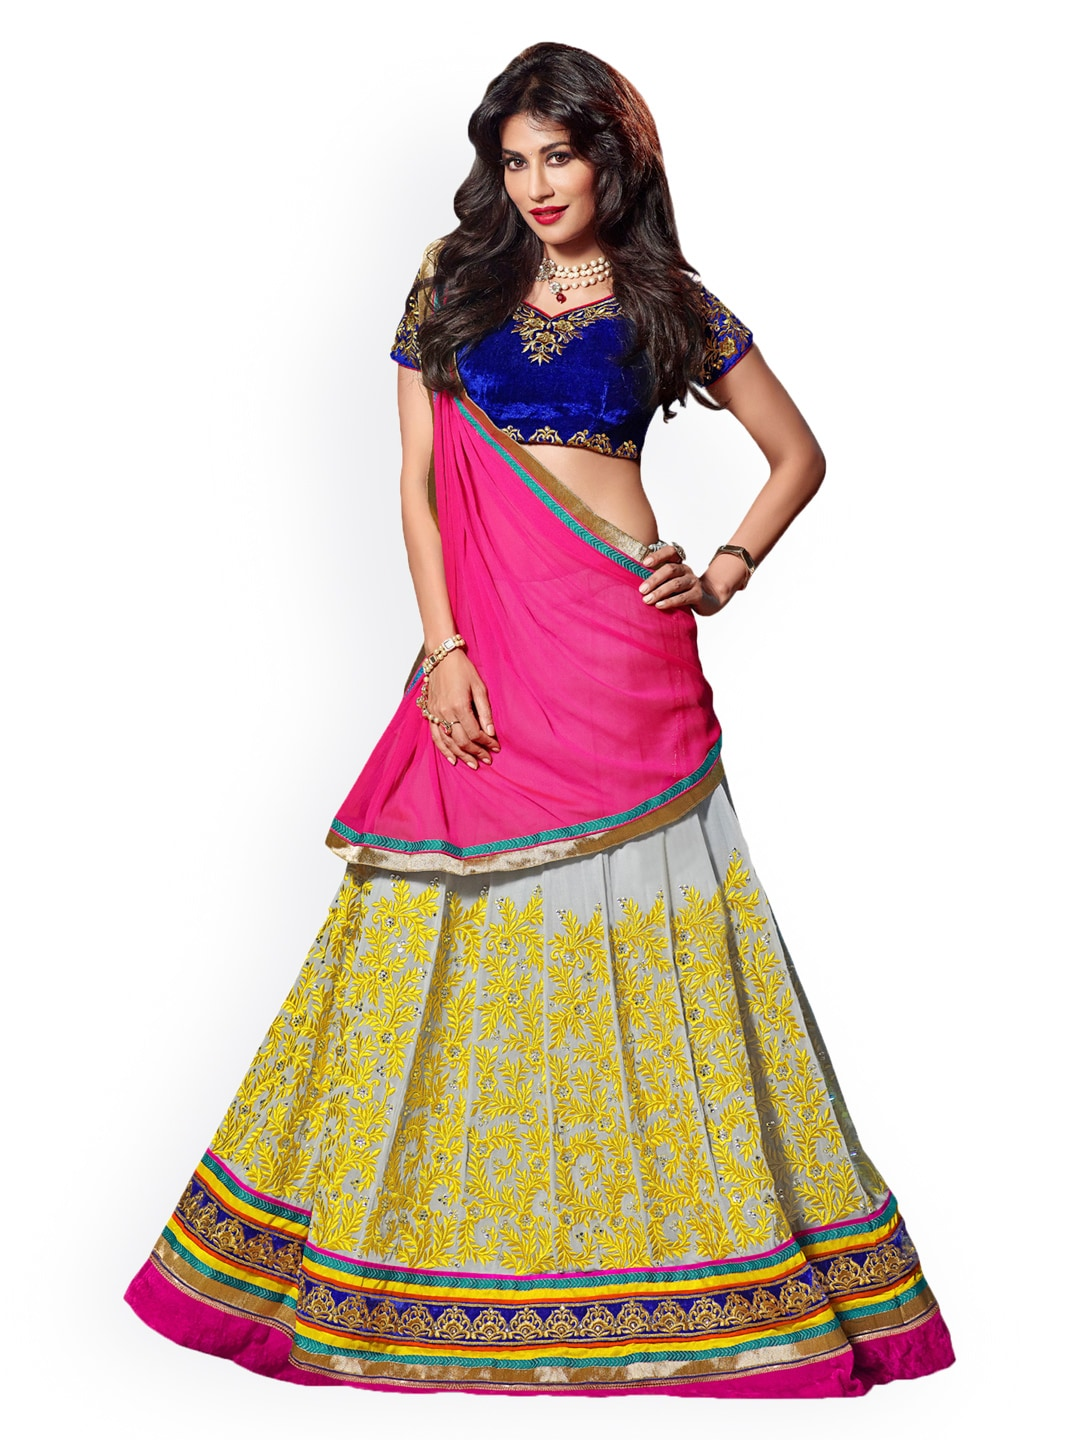 Touch Trends Grey & Blue Faux Georgette Semi-Stitched Lehenga Choli Material with Dupatta